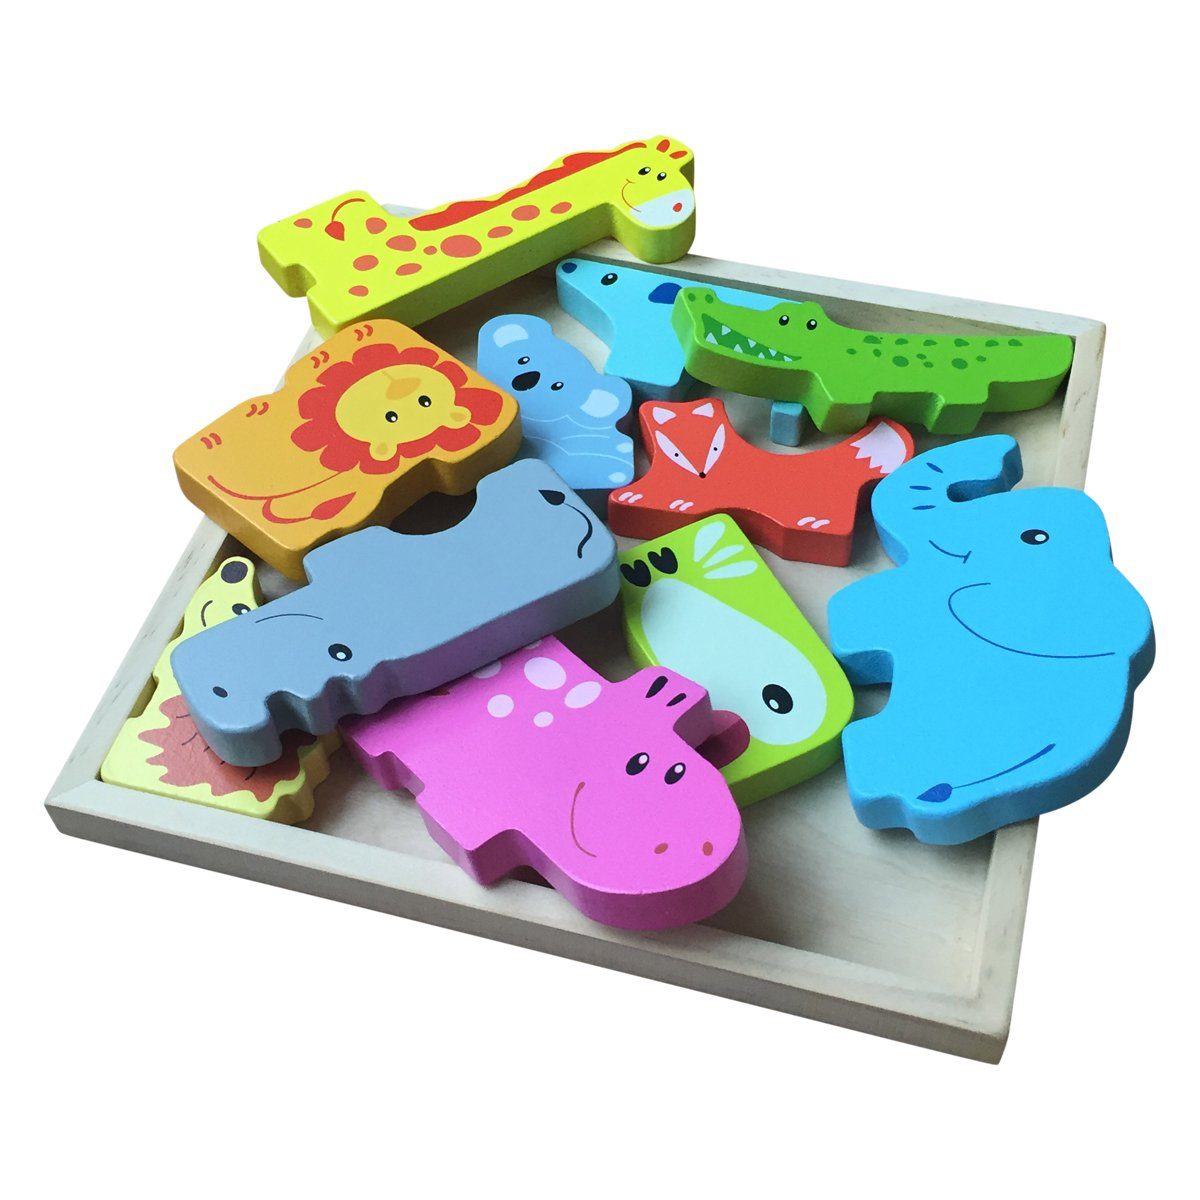 Wooden Puzzle for Kids 3 Years & Older - Fun Animal Kingdom Theme - Easy to Grab Colorful Chunky Puzzle Pieces